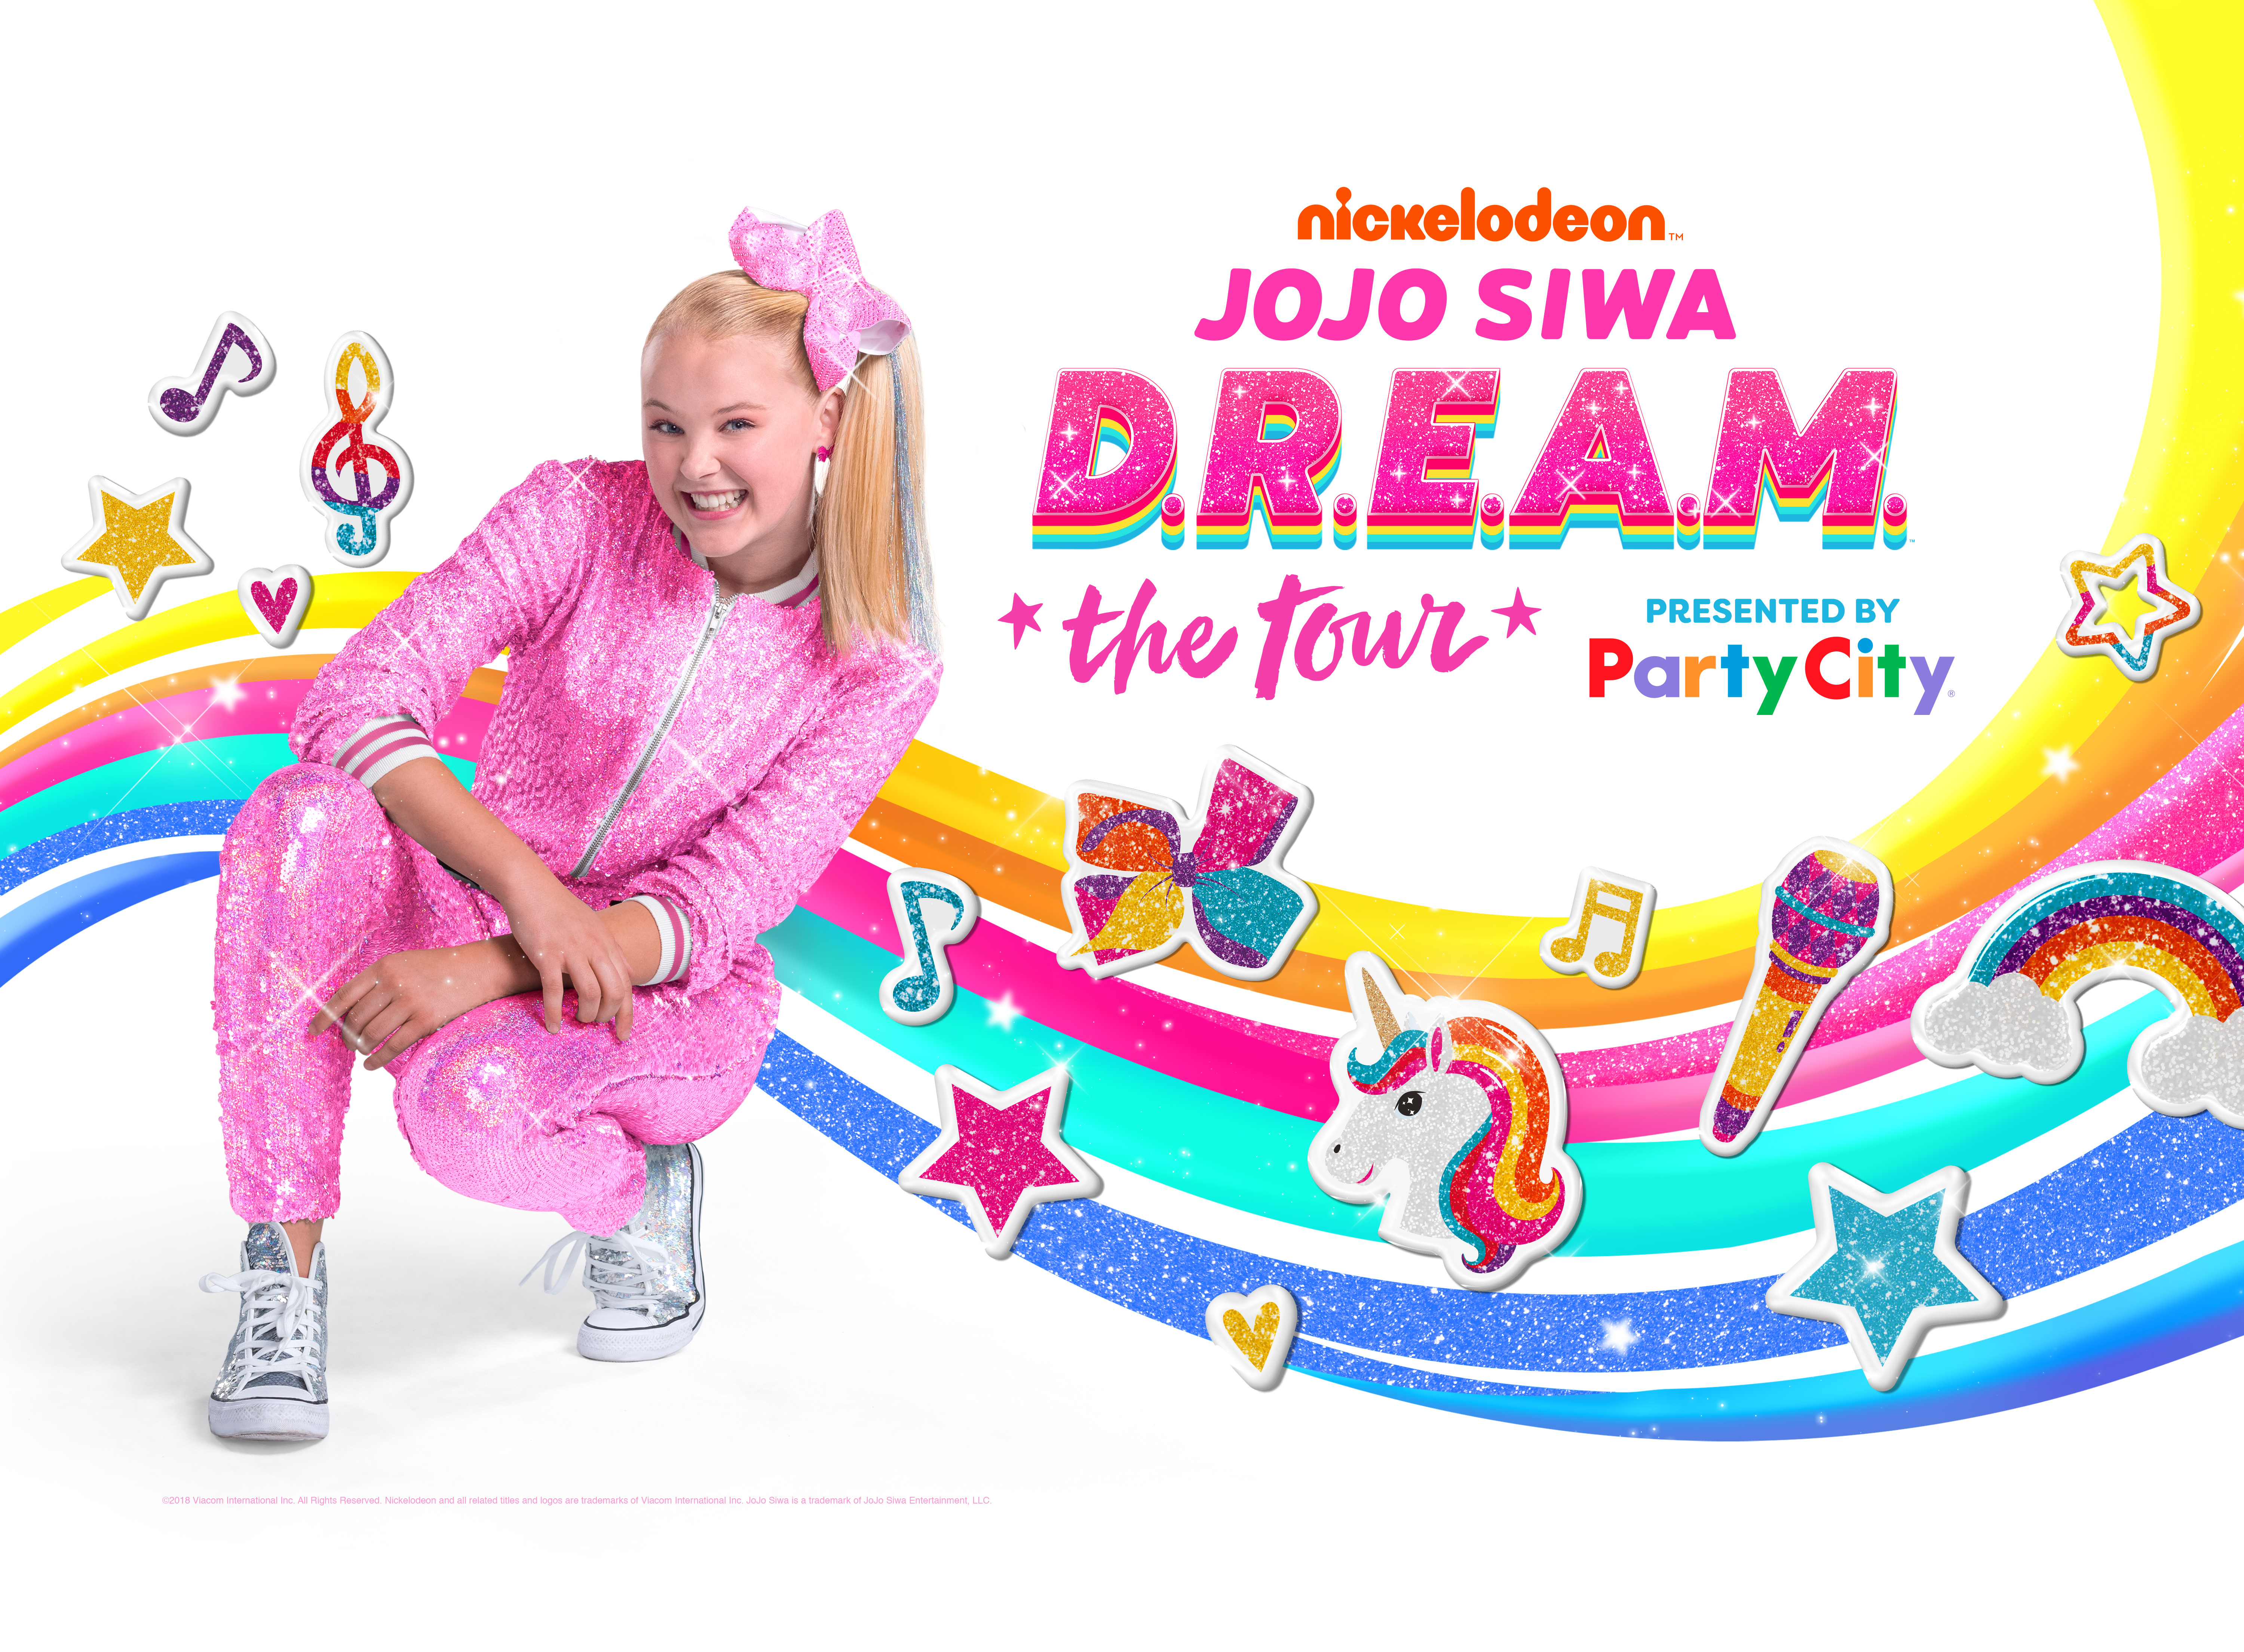 Nickelodeon S Jojo Siwa D R E A M The Tour Adds 17 New Dates Bringing Live Show To 70 Cities Business Wire